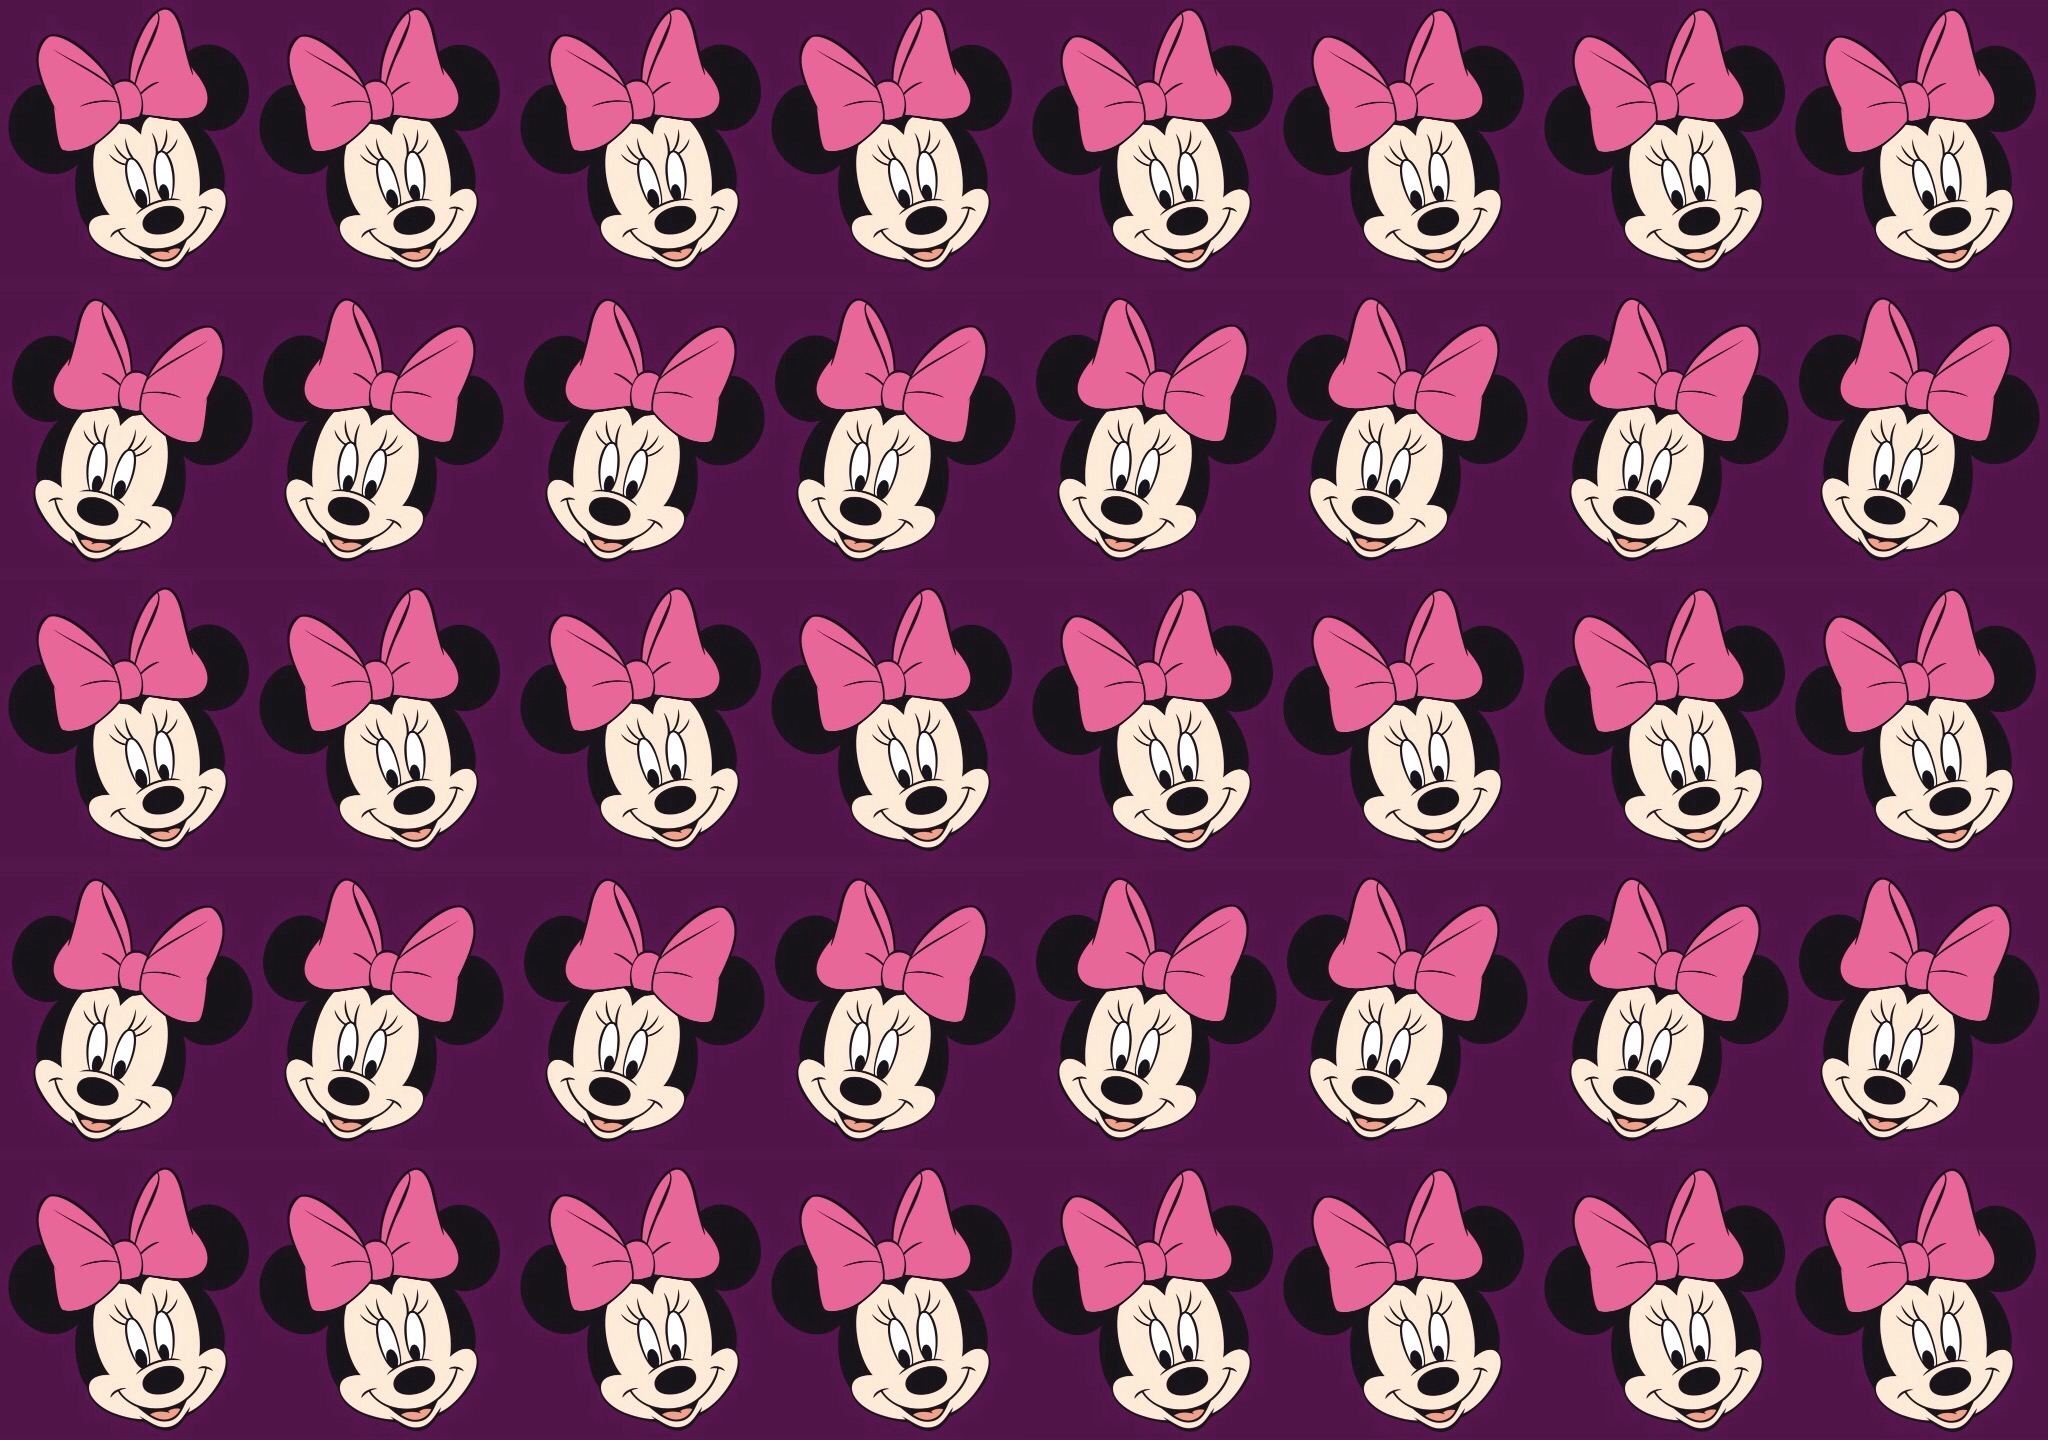 Minnie Mouse wallpaper - Patterns